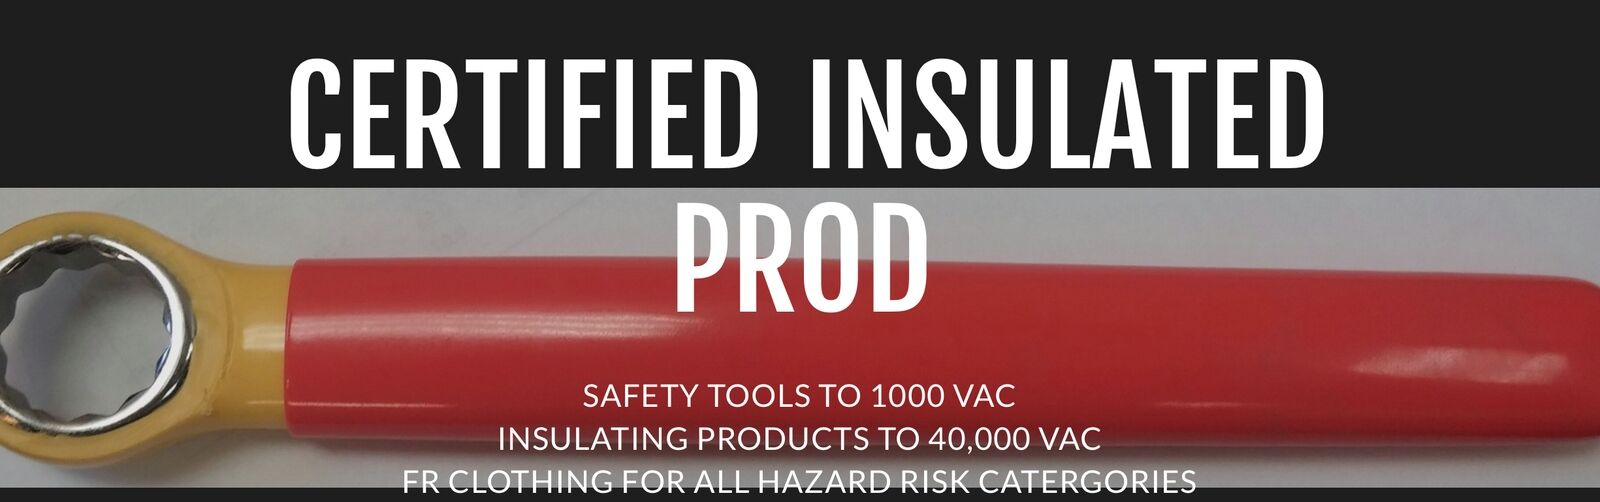 Certified Insulated Products